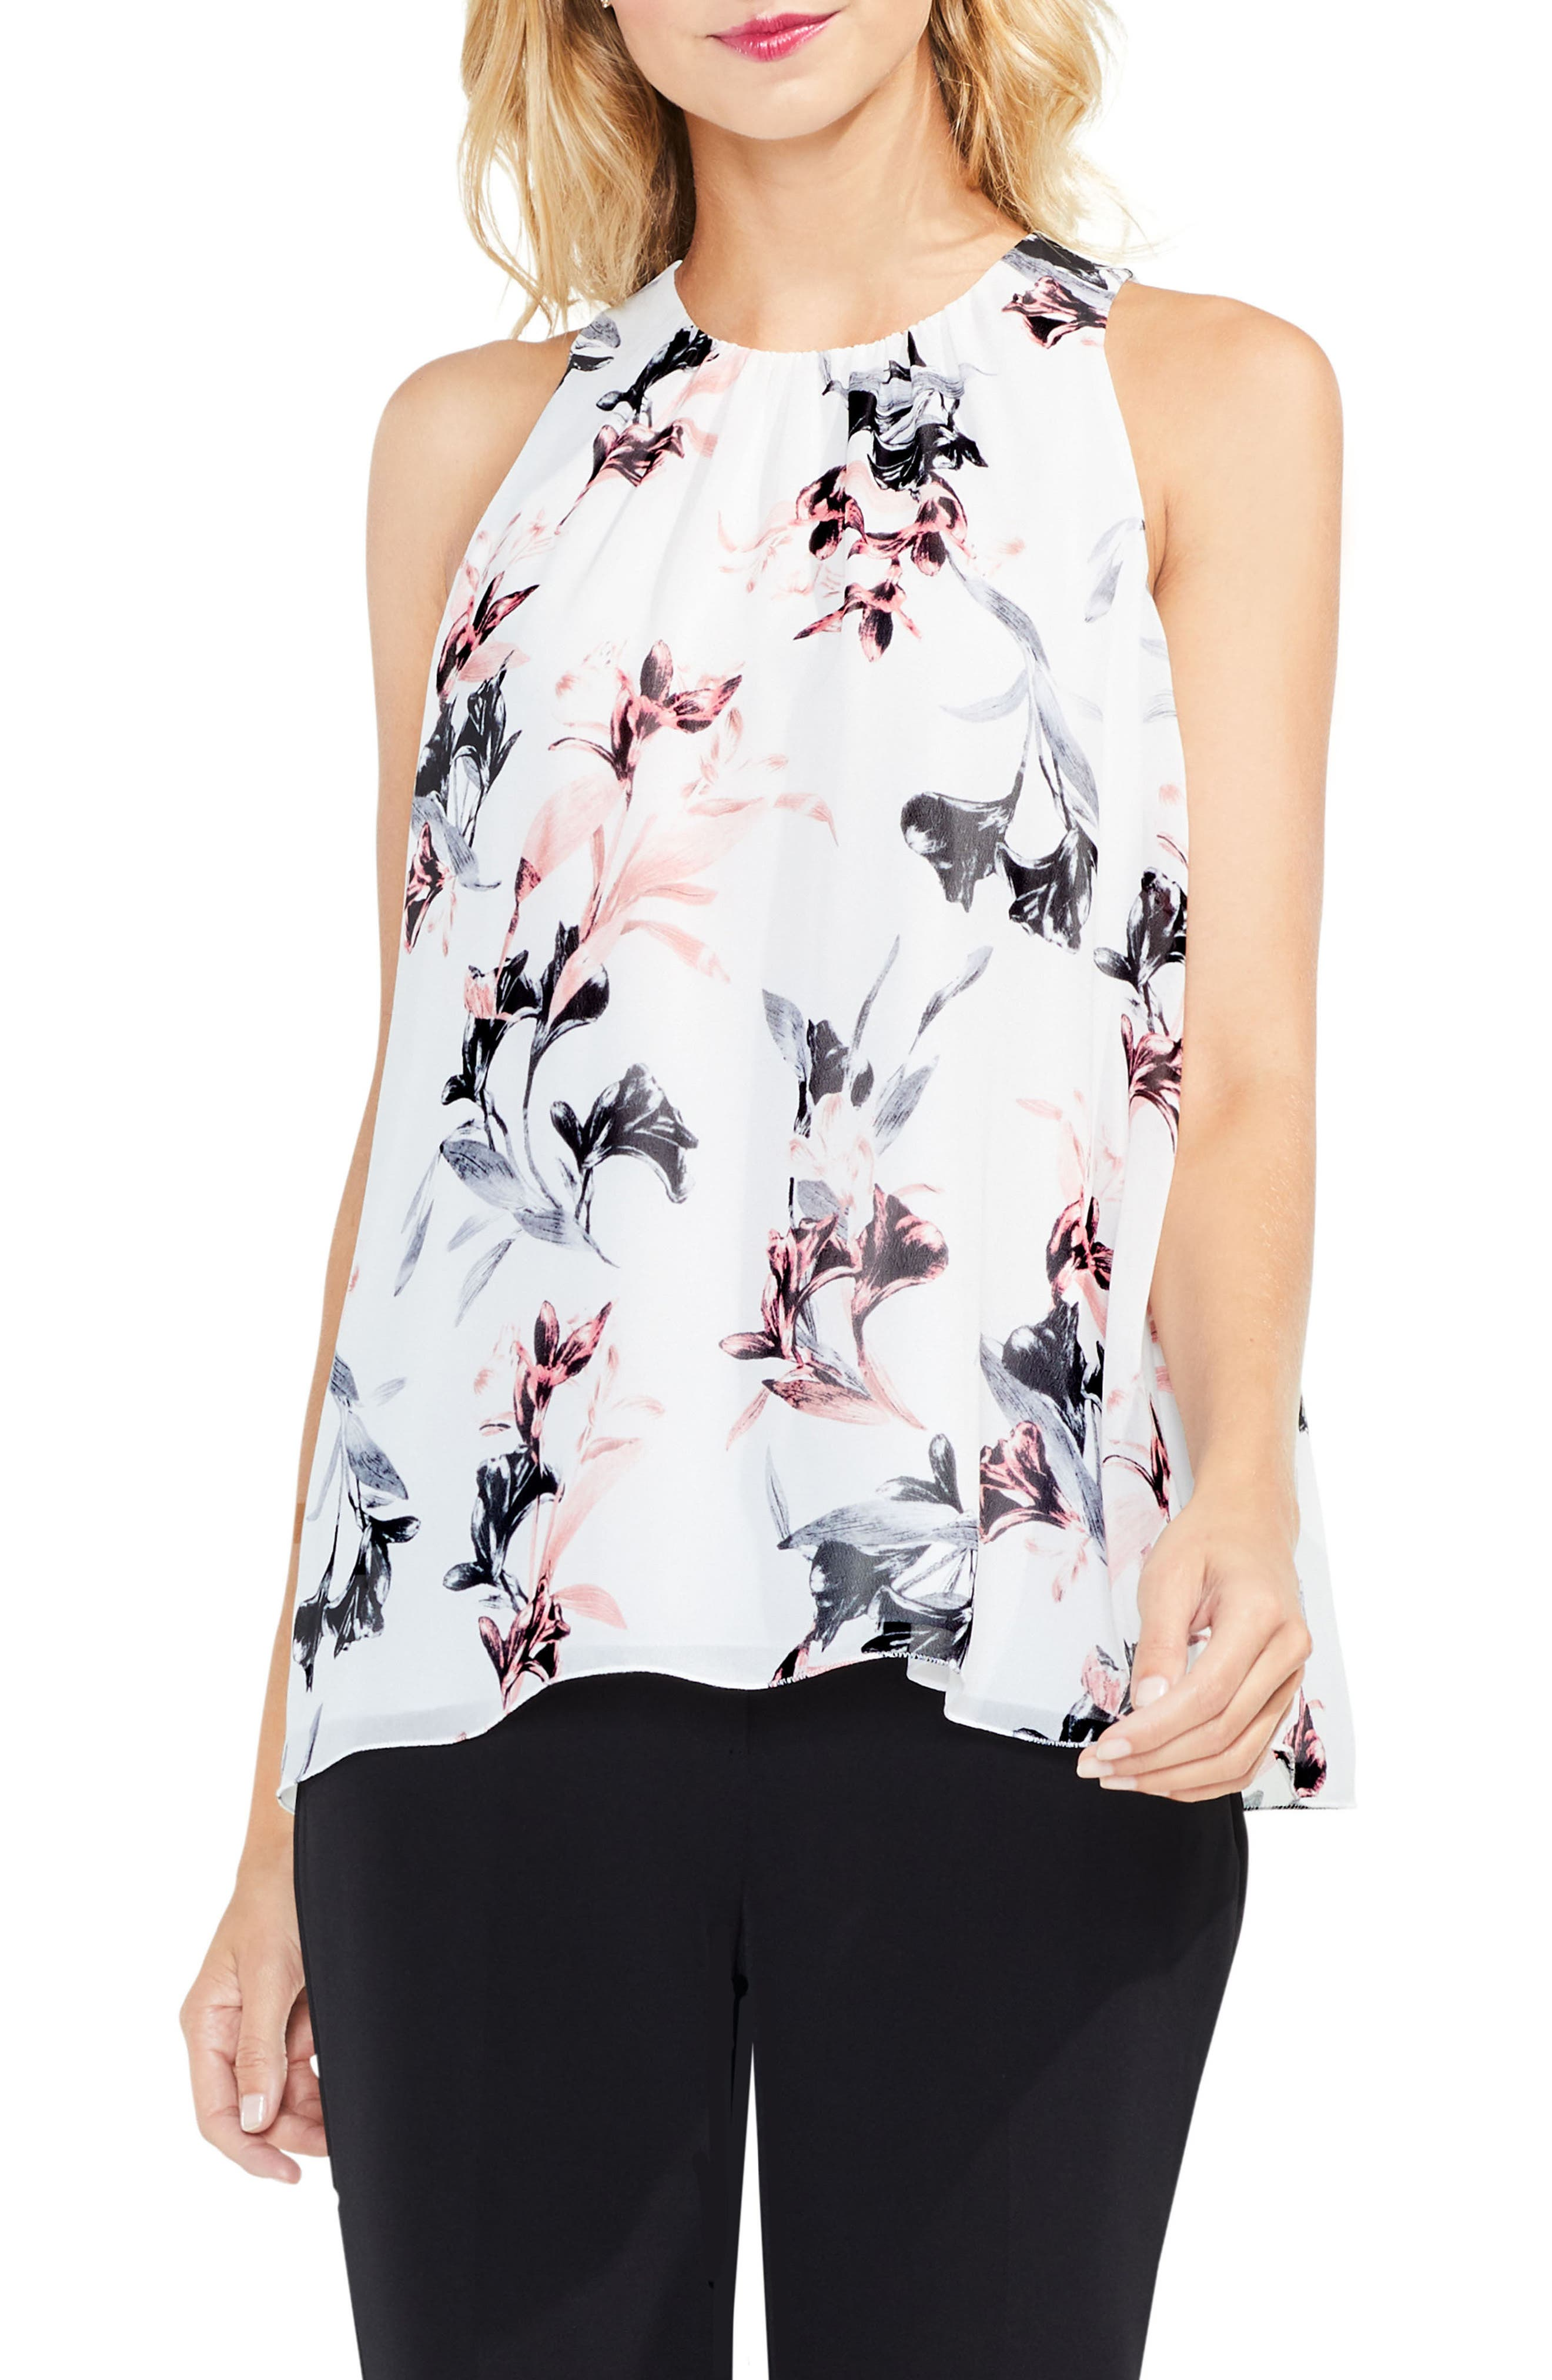 Lily Melody Sleeveless Blouse,                         Main,                         color, New Ivory